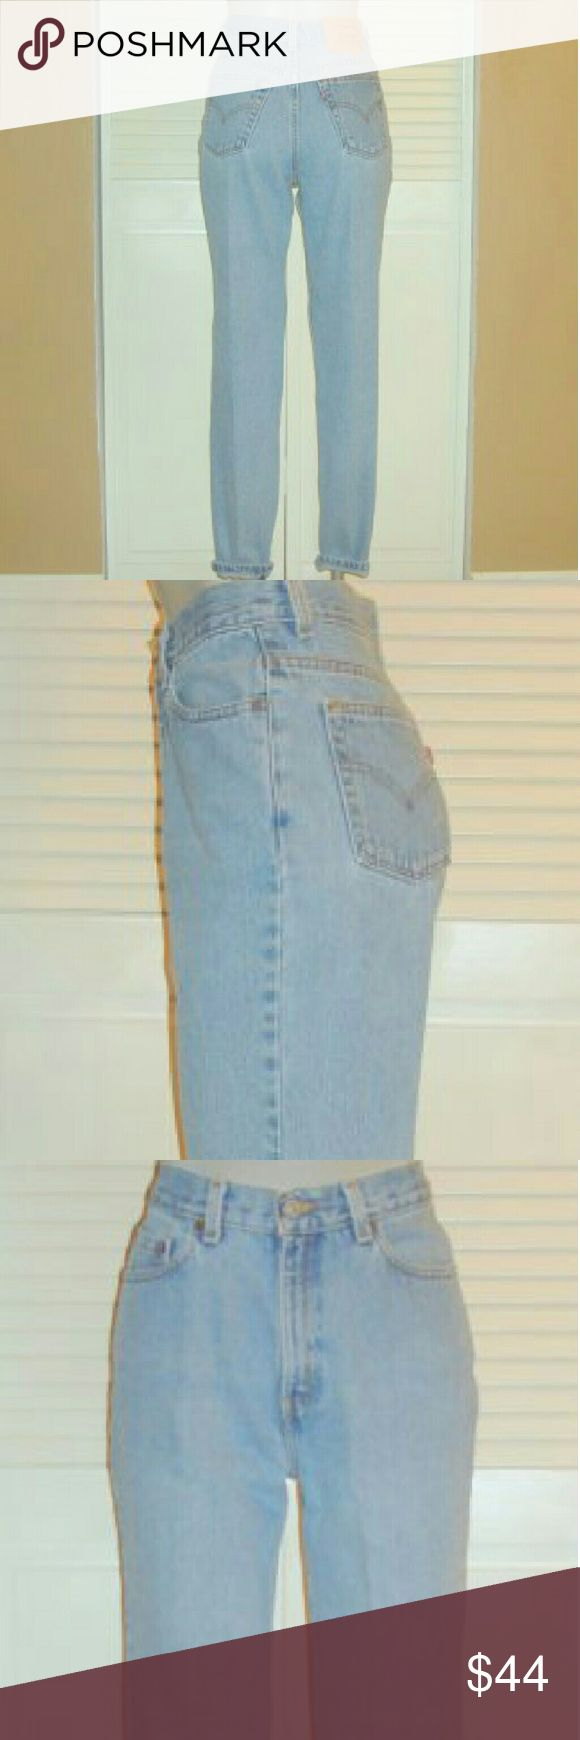 "Vintage Levis 512 High Waisted Tapered Mom Jeans This pair of Vintage Levi's 512 blue jeans are 32"" around the waist, 40"" around the hips, have an 11 1/2"" rise and a 31"" inseam. They are marked 31x30 but measure 32x31. Levi's Jeans Straight Leg"